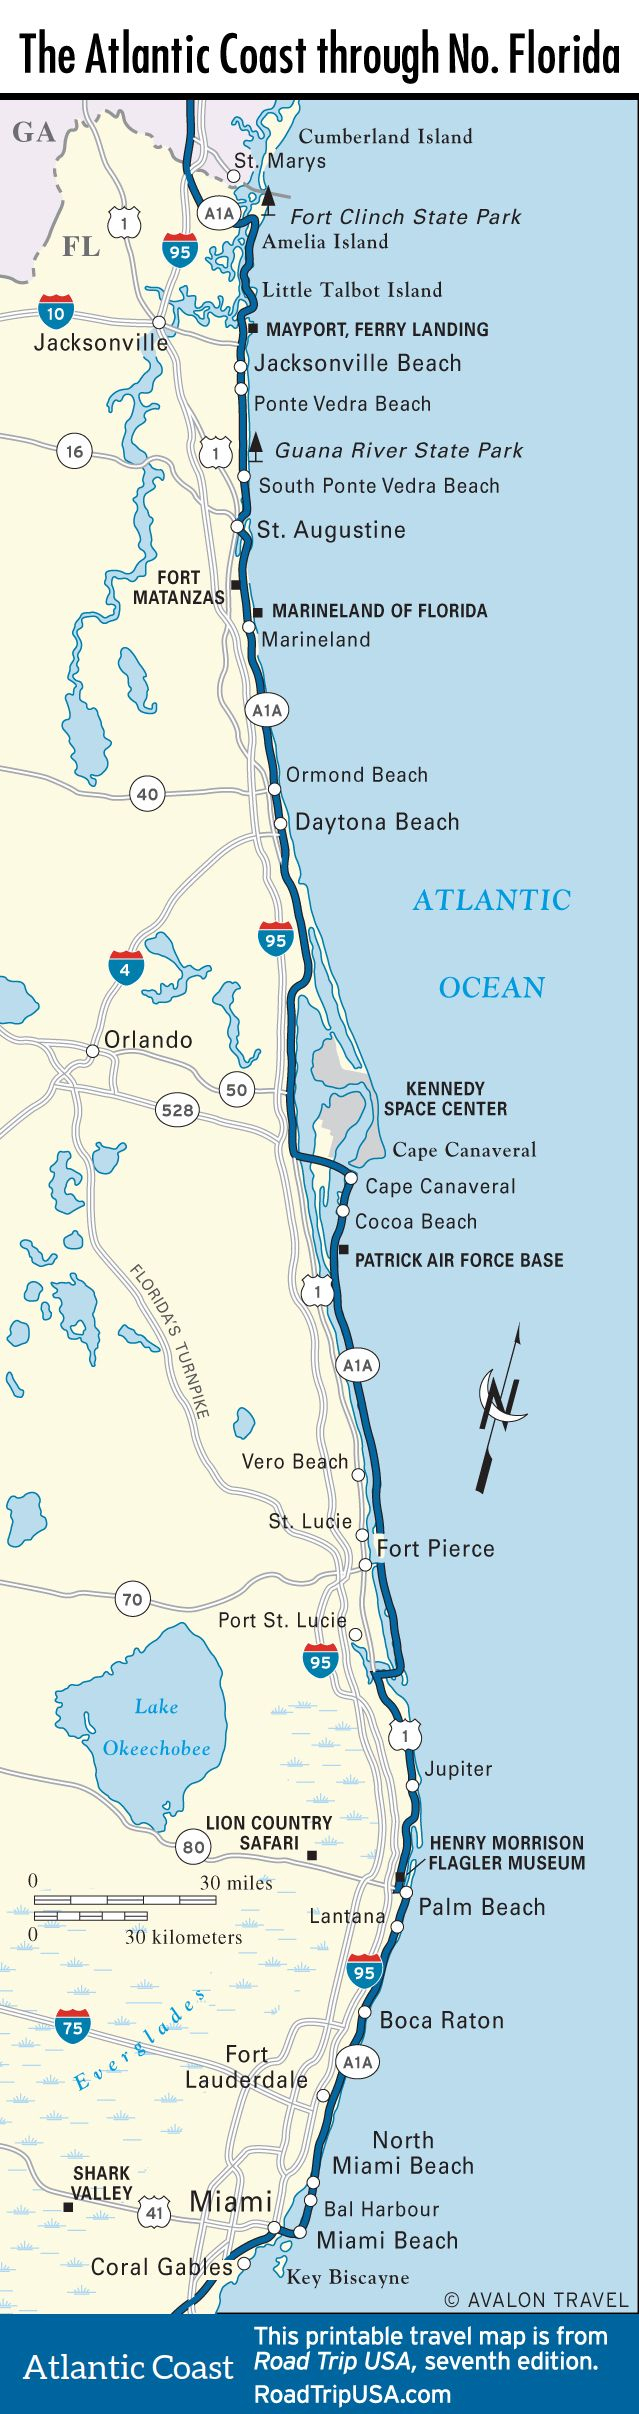 Map Of The Atlantic Coast Through Northern Florida. | Florida A1A - Map Of Florida Coastal Cities